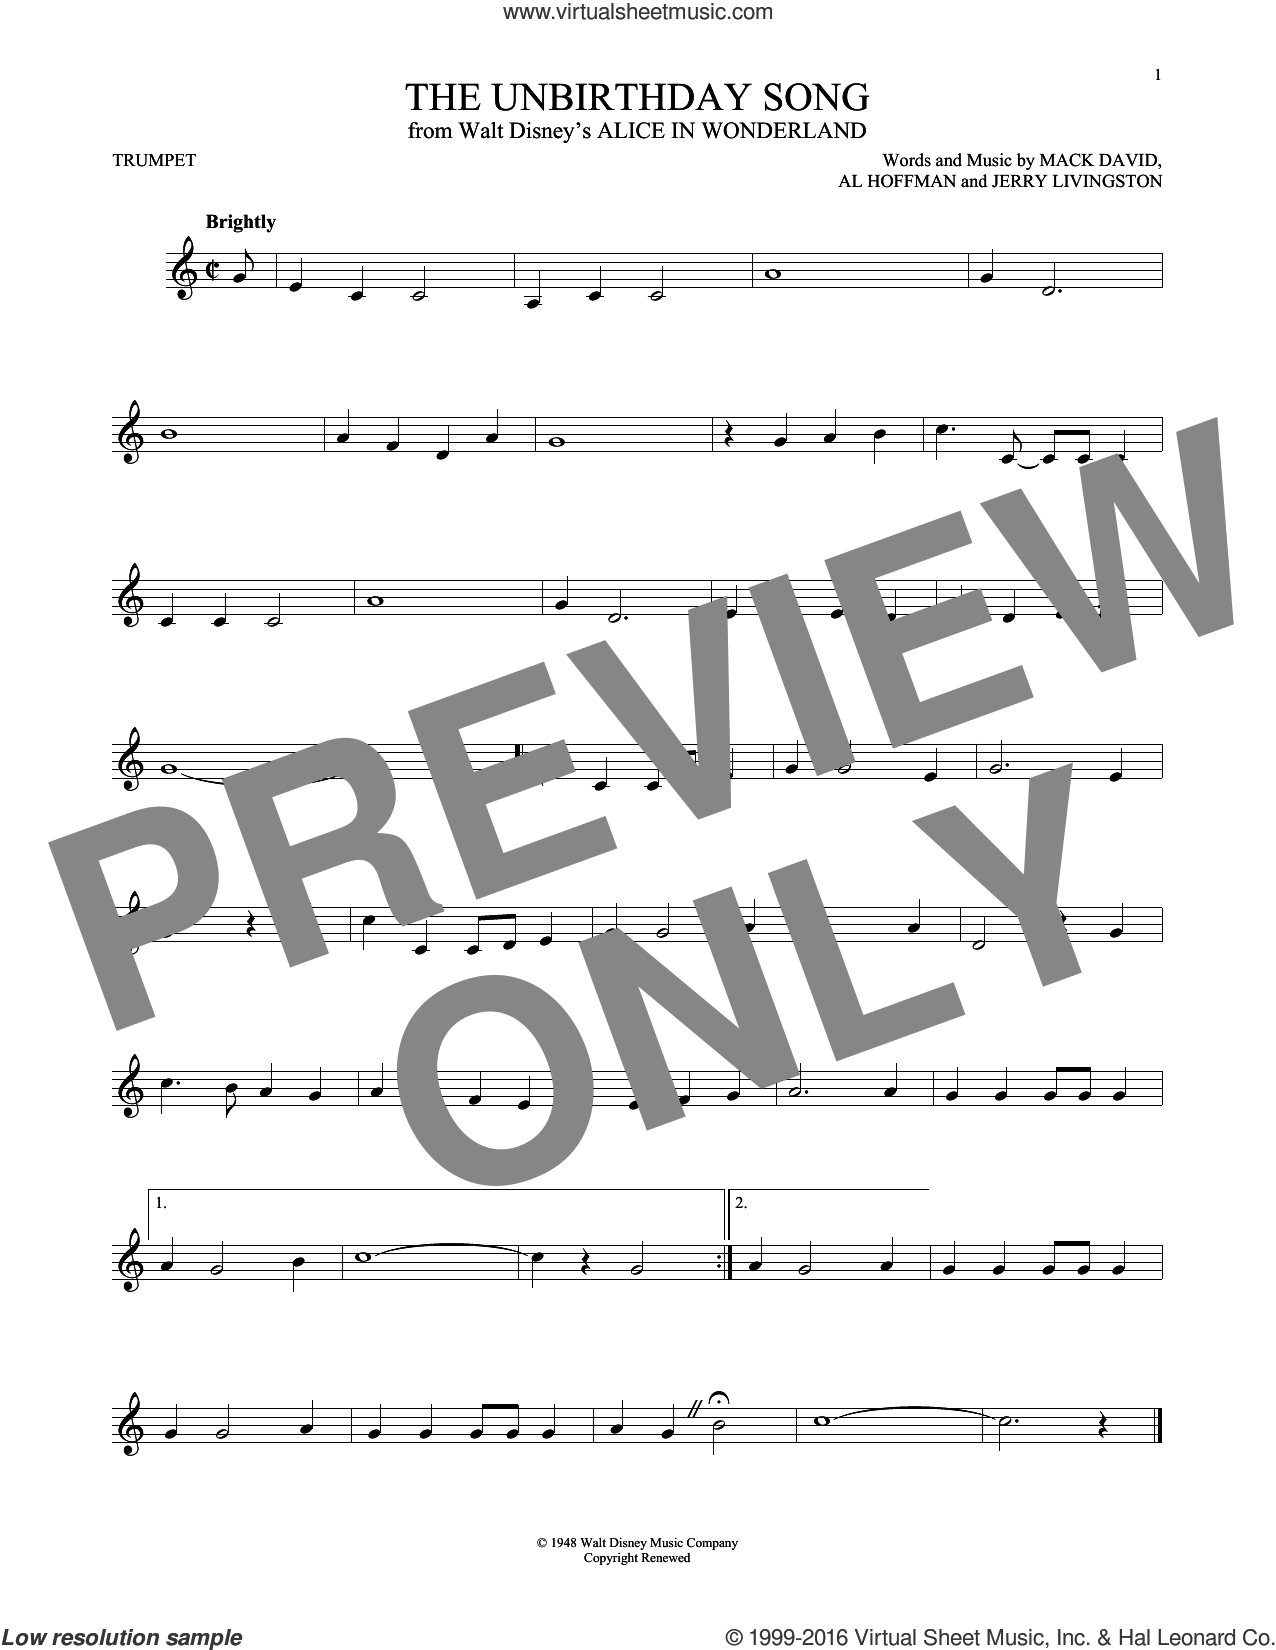 The Unbirthday Song sheet music for trumpet solo by Mack David